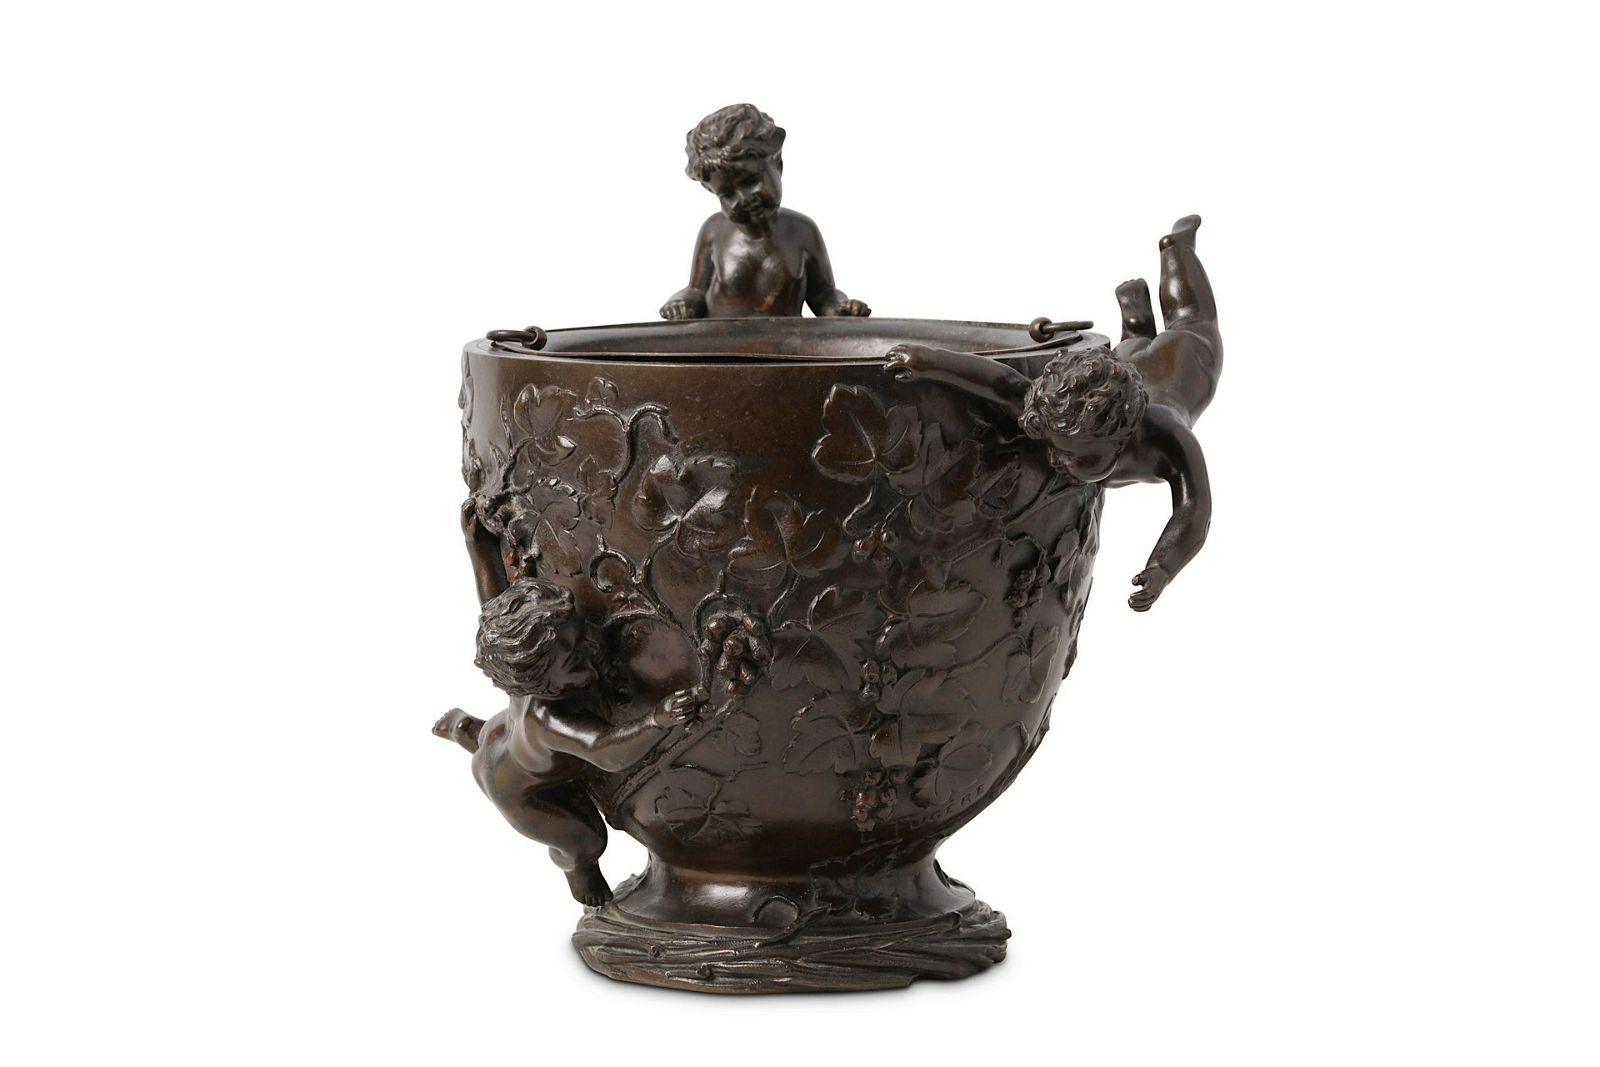 A late 19th century French bronze figural jardiniere